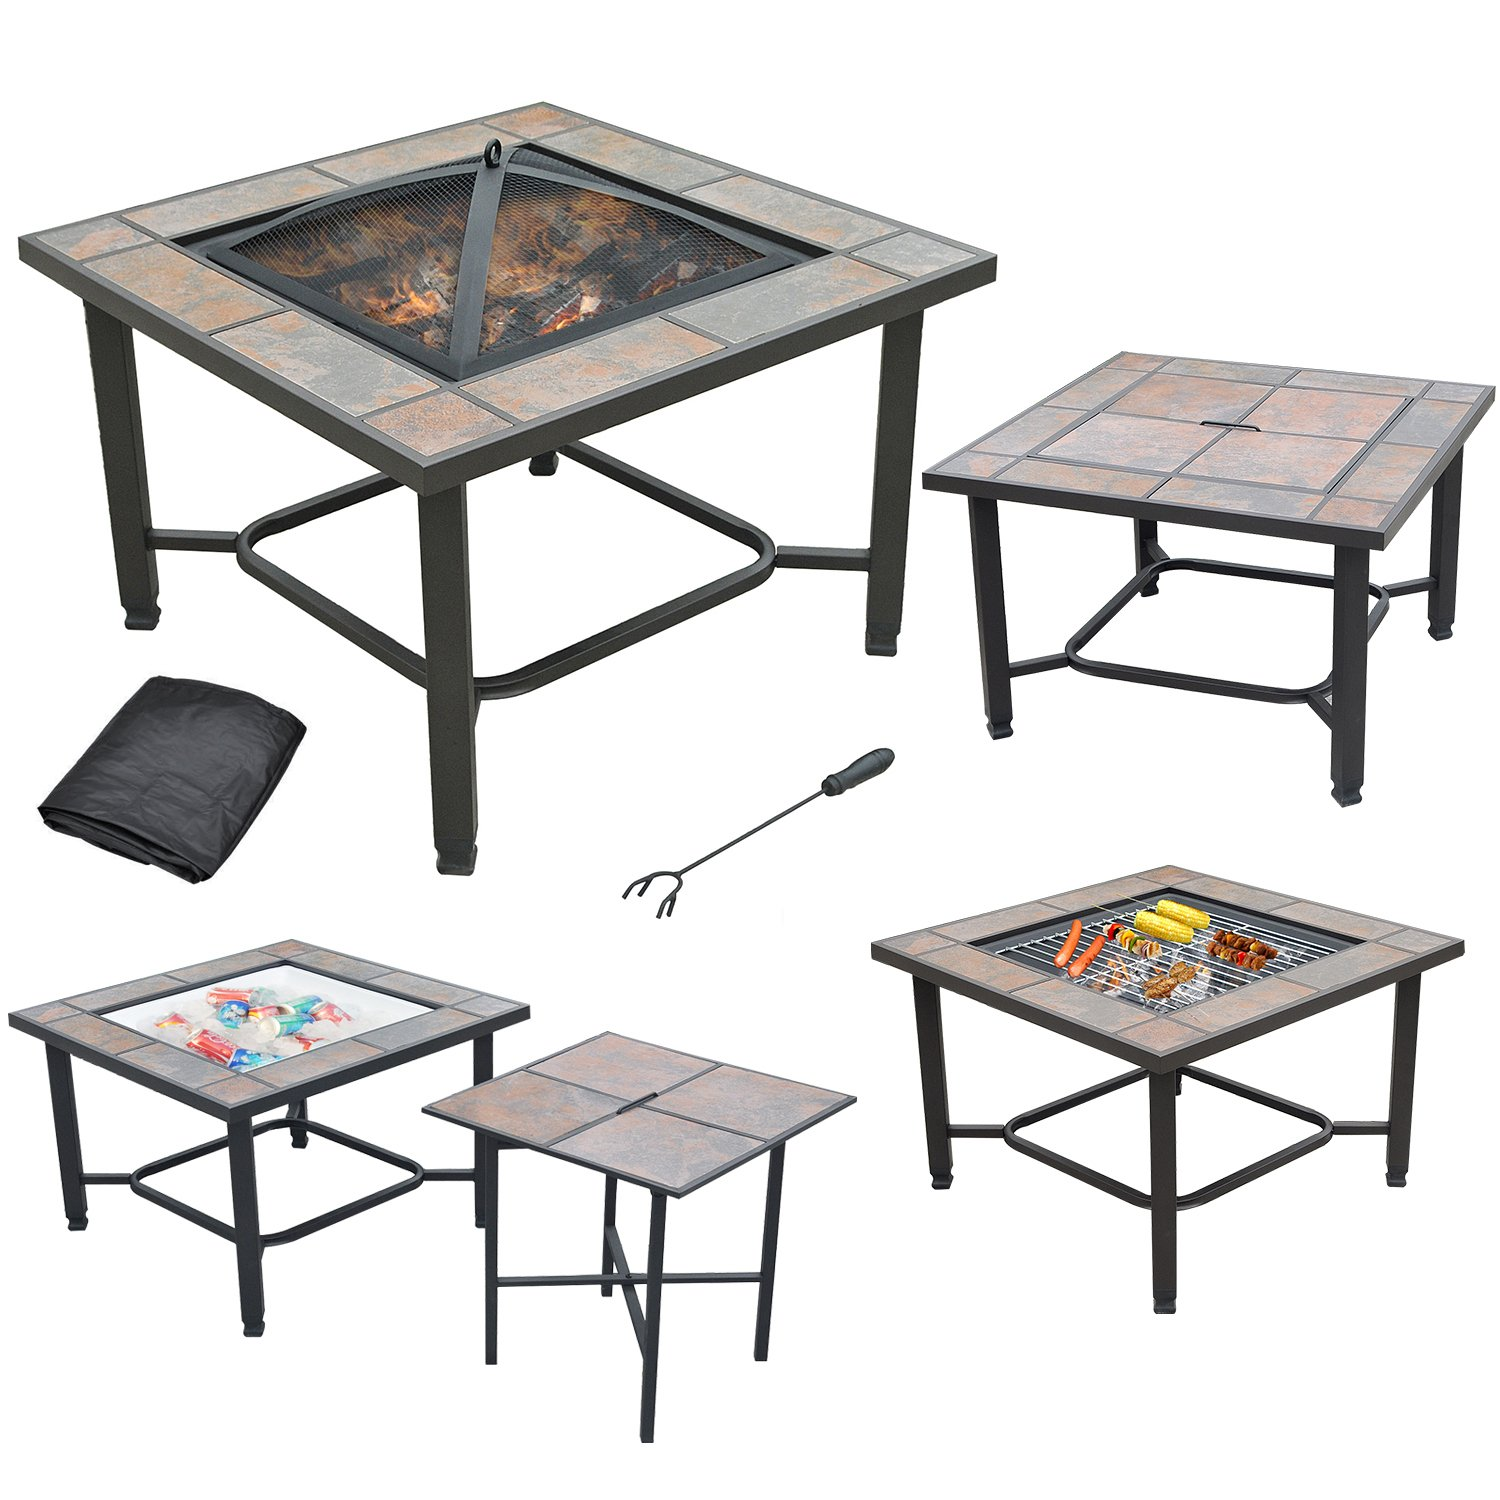 AXXONN 5 in 1, 30'' Square Tile Top Fire Pit, Grill, Cooler, Coffee Table and Side Table with Cover by AXXONN